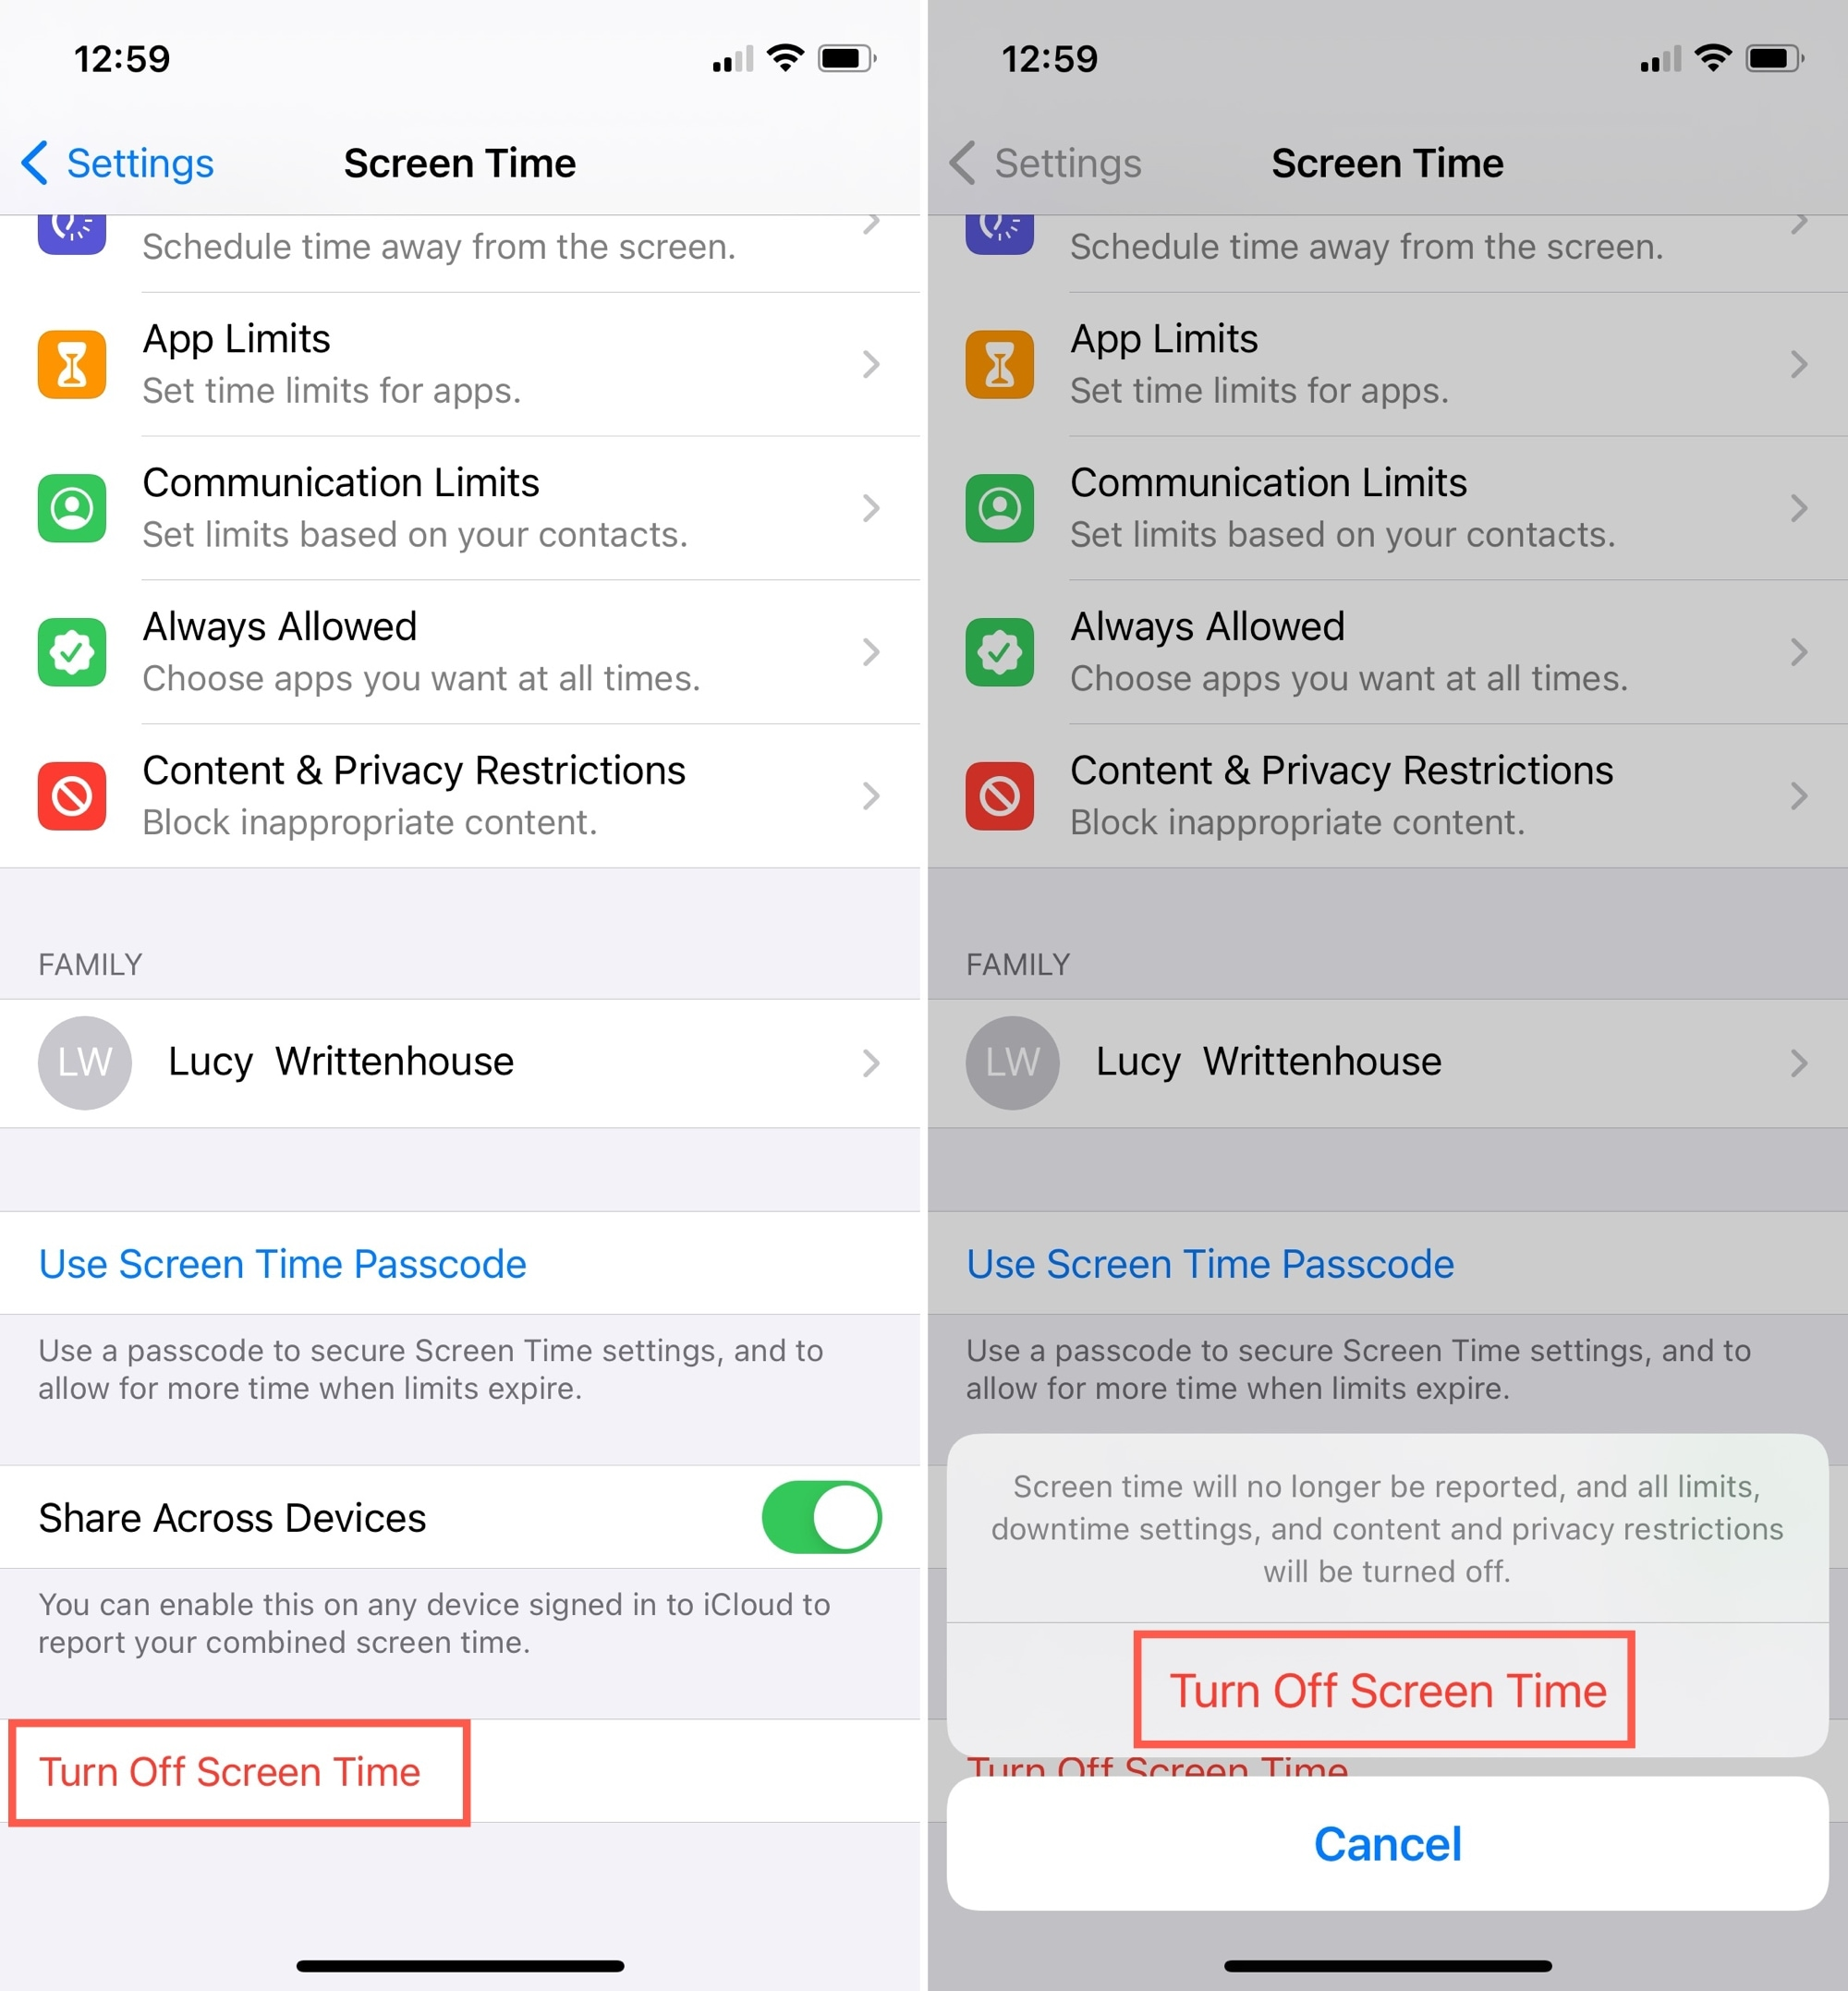 Turn Off Screen Time and Confirm on iPhone